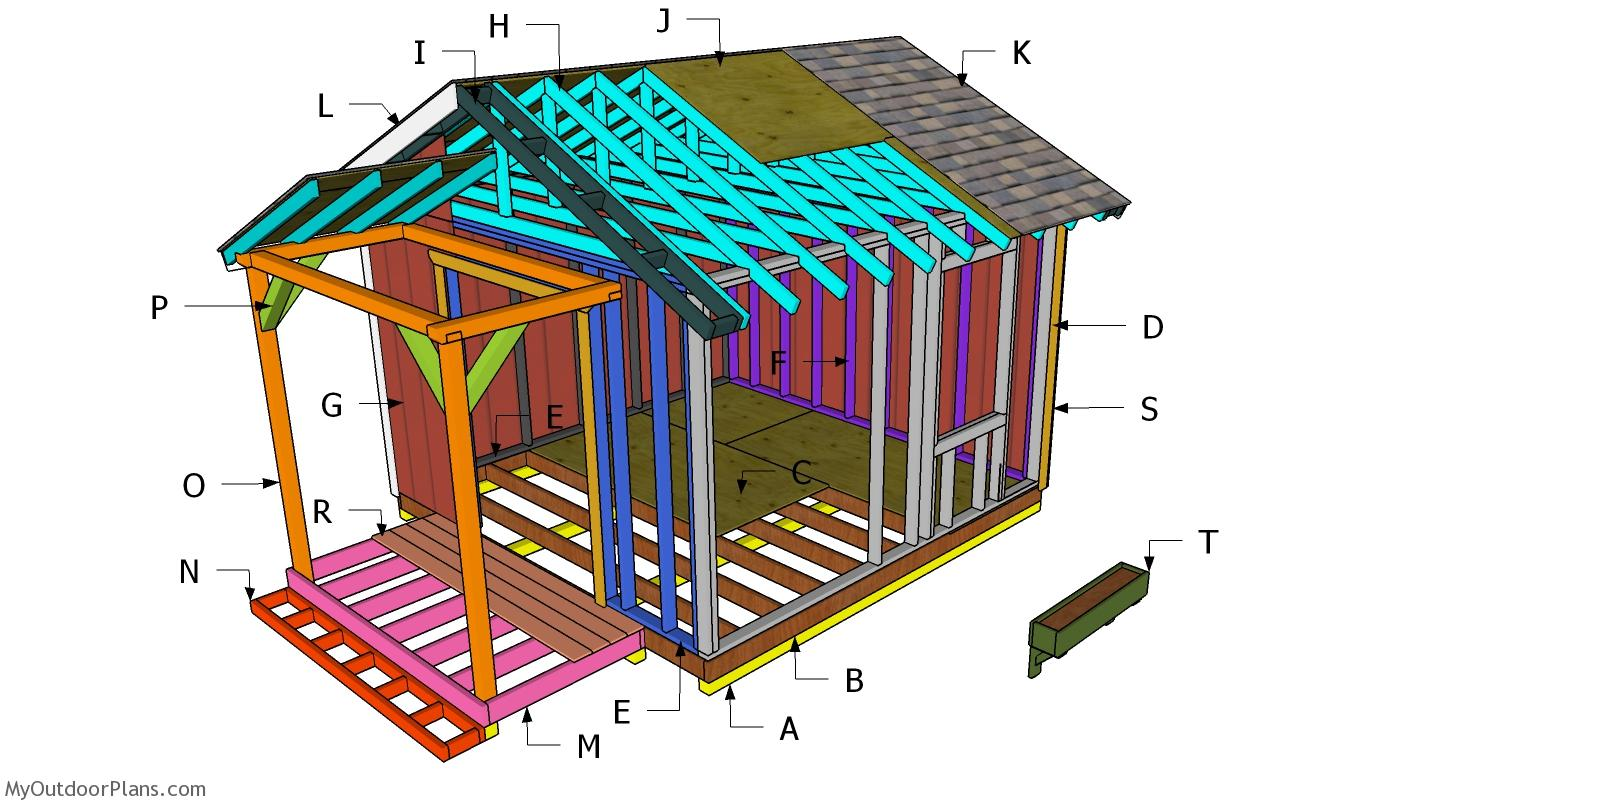 12x12 She Shed Porch Free Diy Plans Myoutdoorplans Free Woodworking Plans And Projects Diy Shed Wooden Playhouse Pergola Bbq